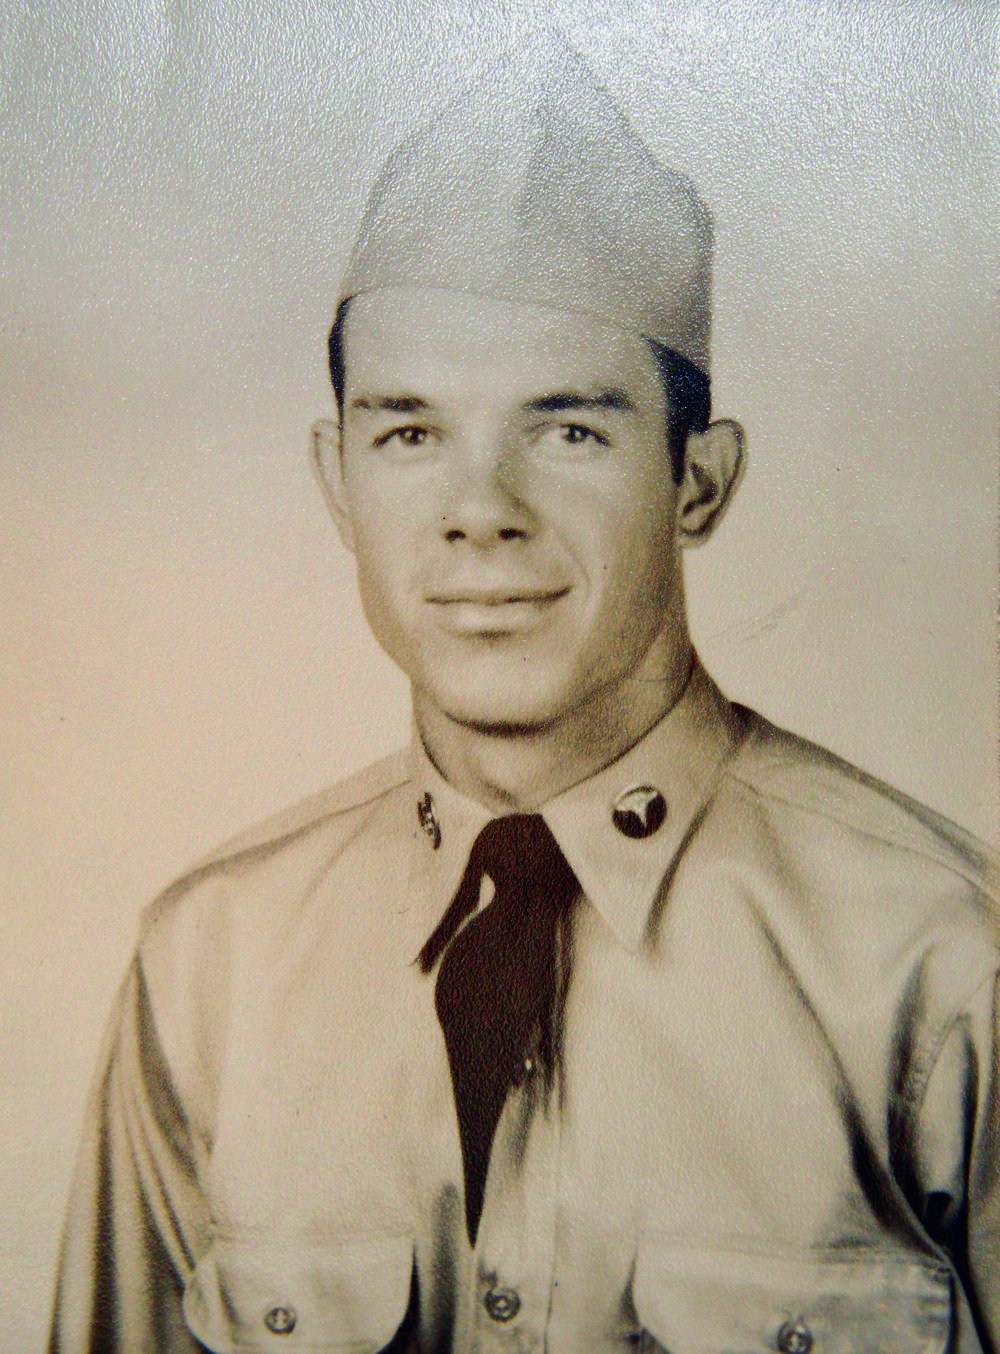 After being drafted into the Korean Conflict, Bobby began working for the JAG office in Japan, reporting court martials.